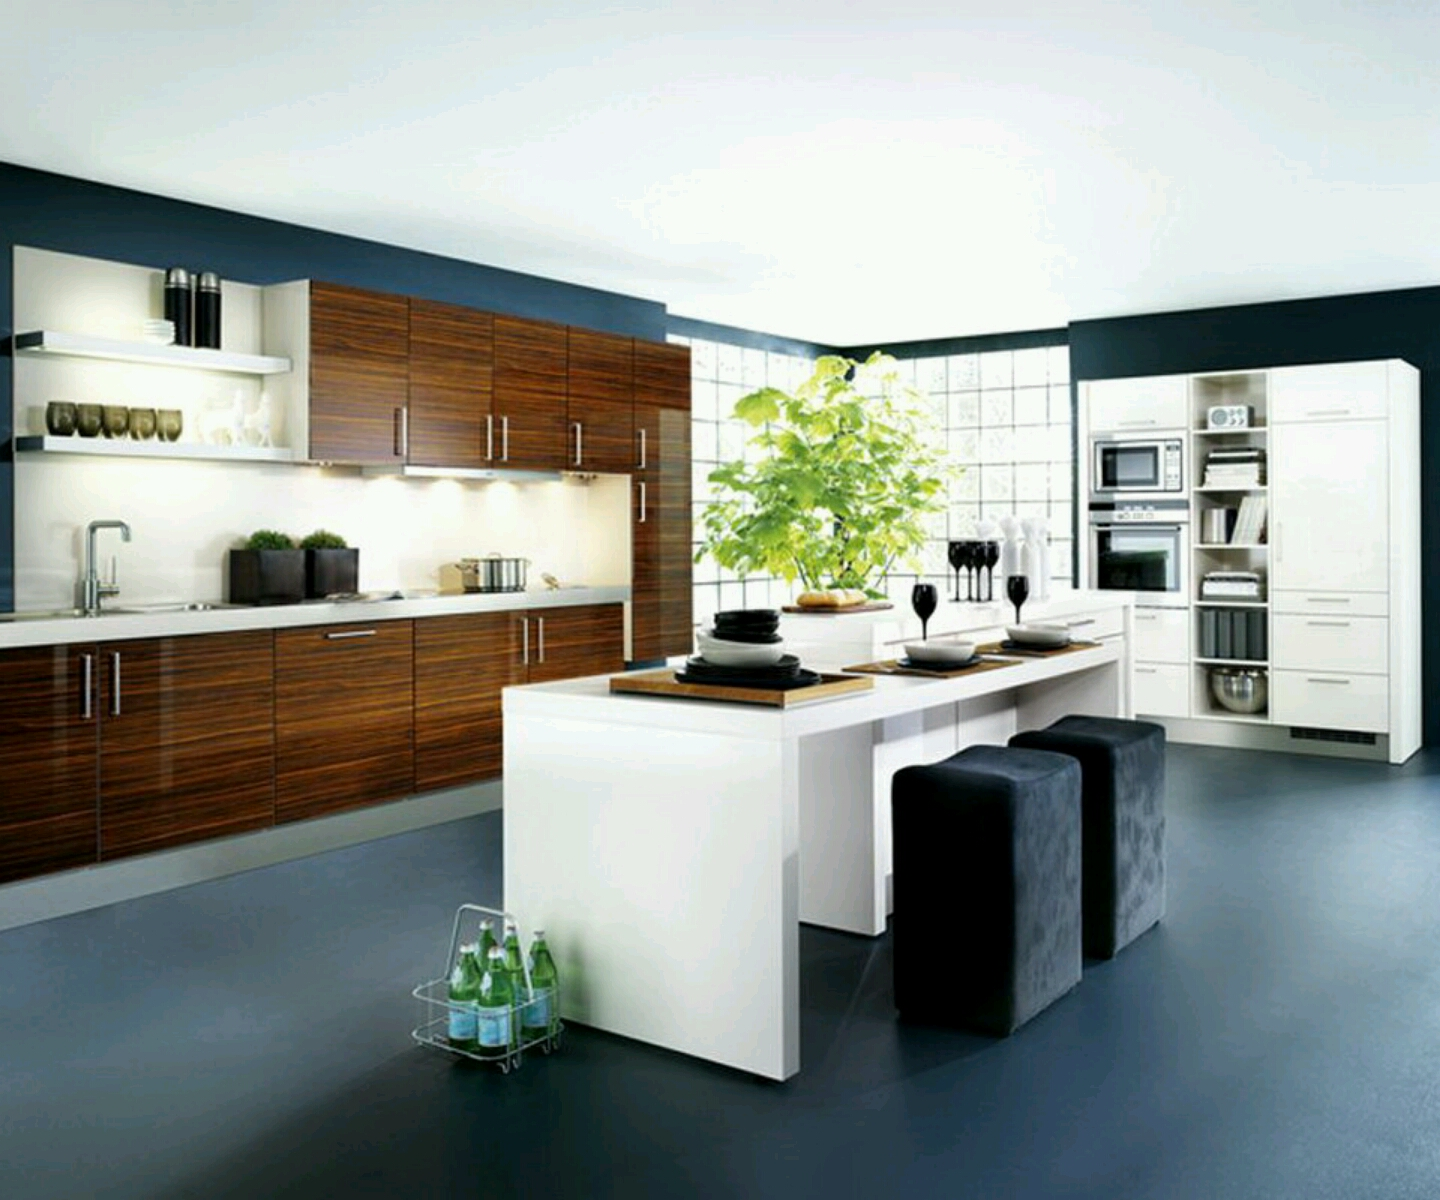 New home designs latest kitchen cabinets designs modern homes - Modern kitchens pictures ...